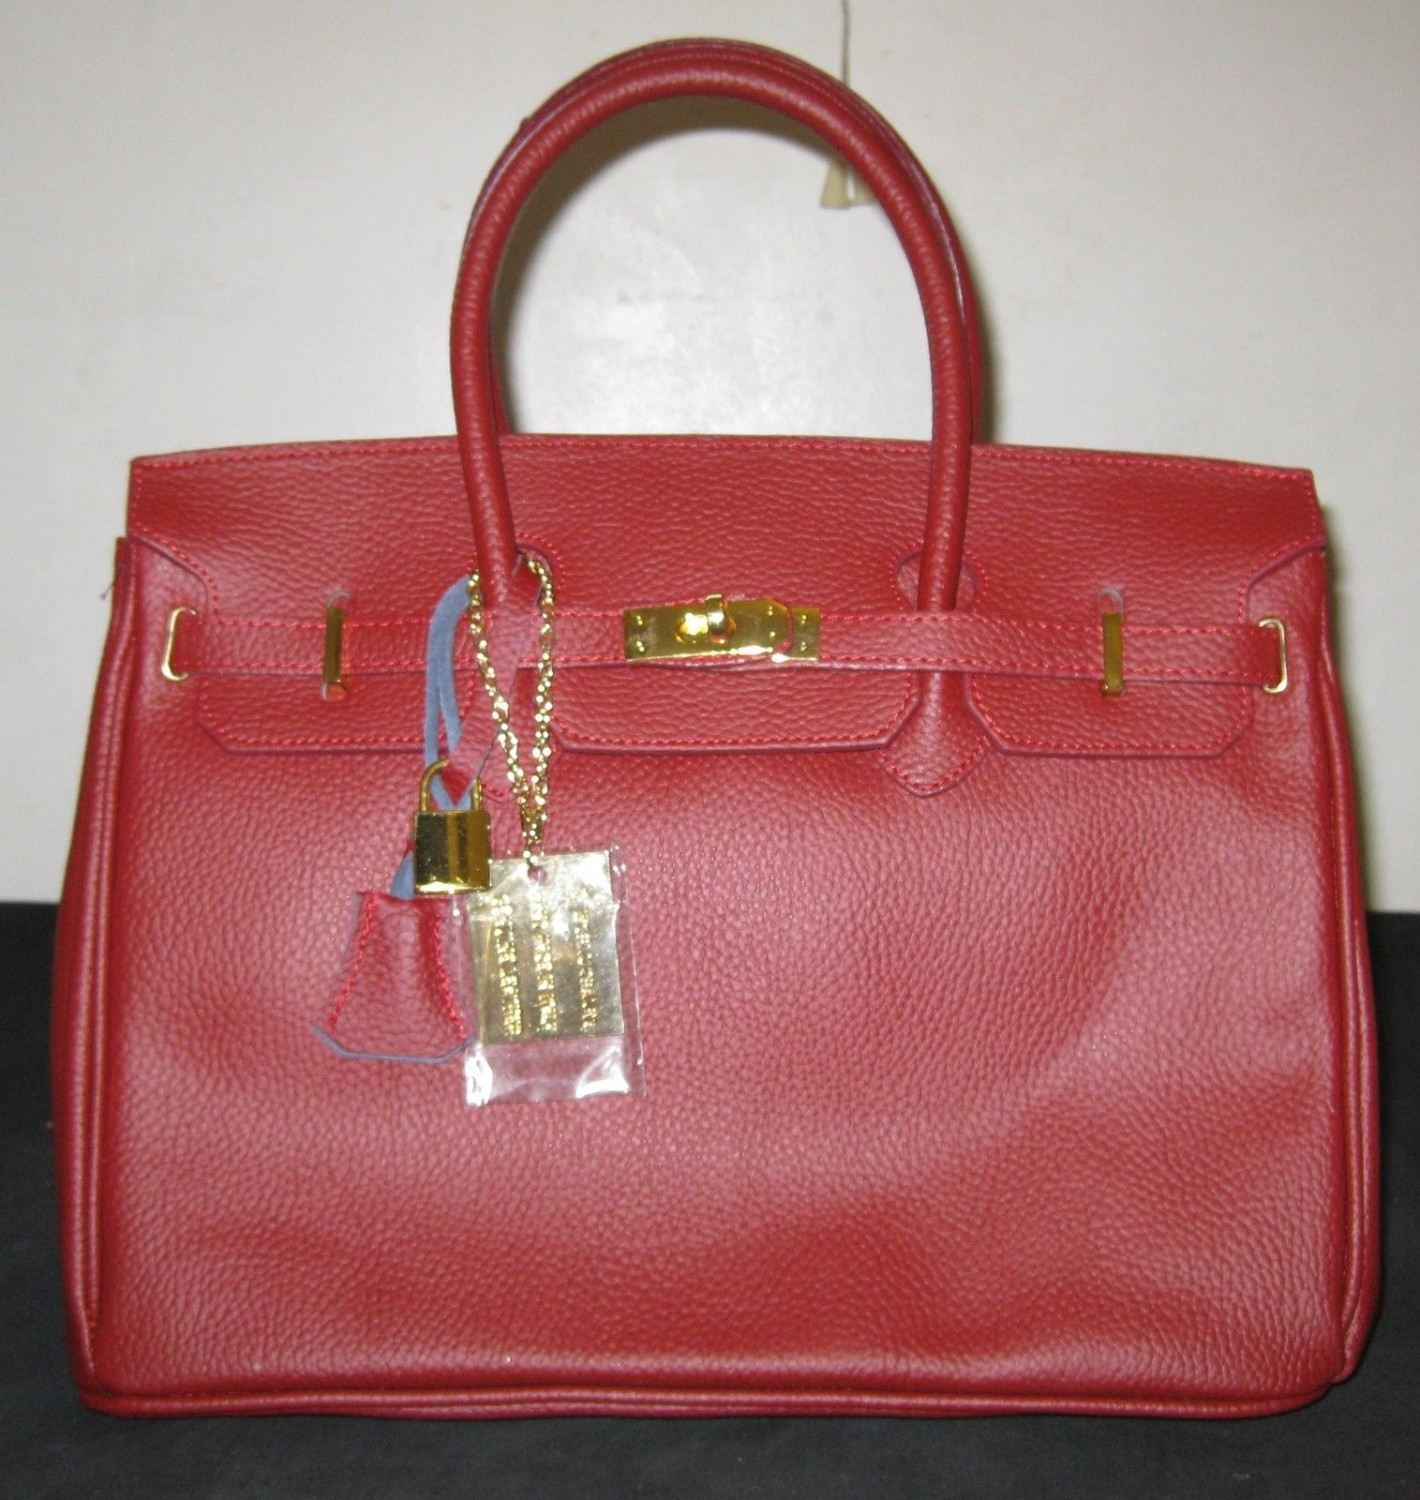 100% Italy Leather Hand Bag - Red Colors.